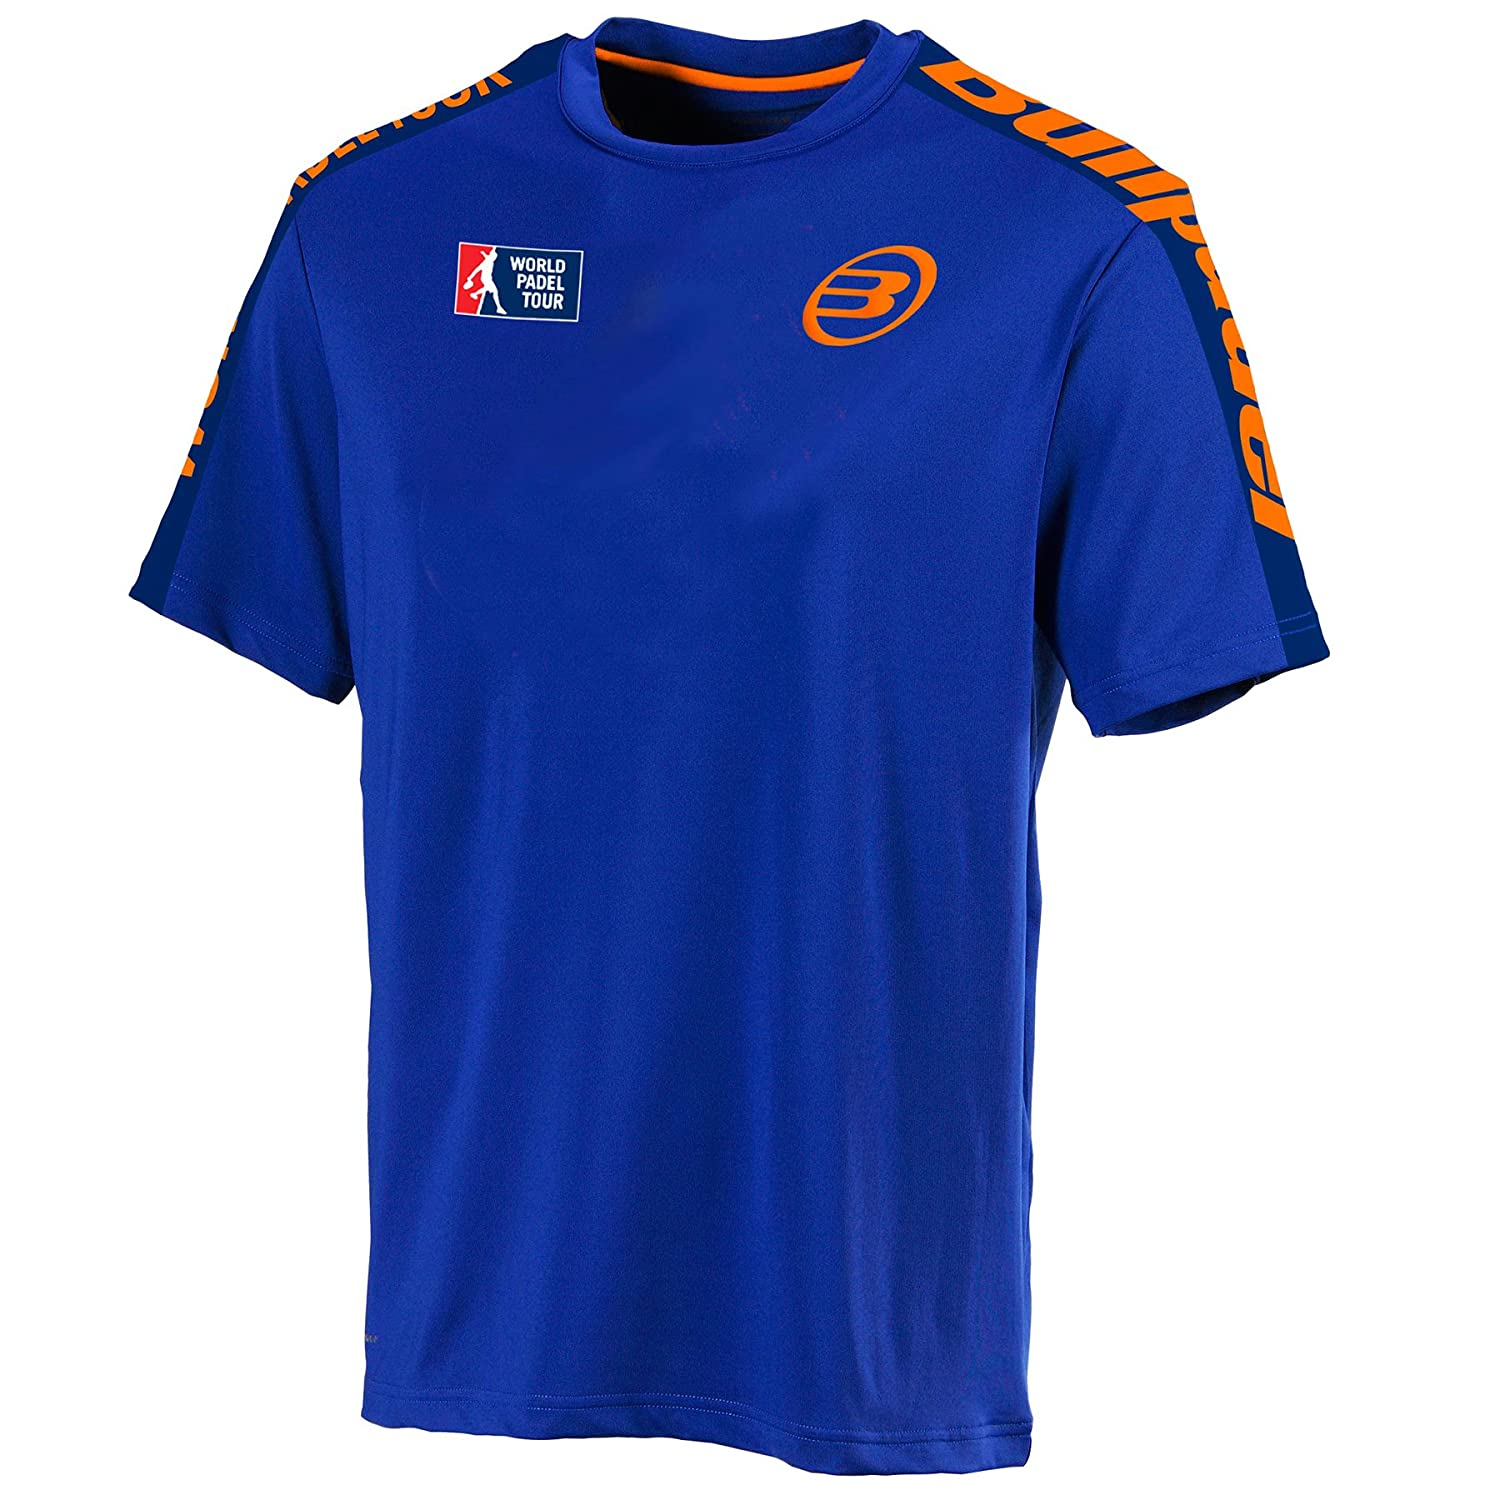 Bull padel - Barbusano, color azul, talla UK-10: Amazon.es: Deportes y aire libre